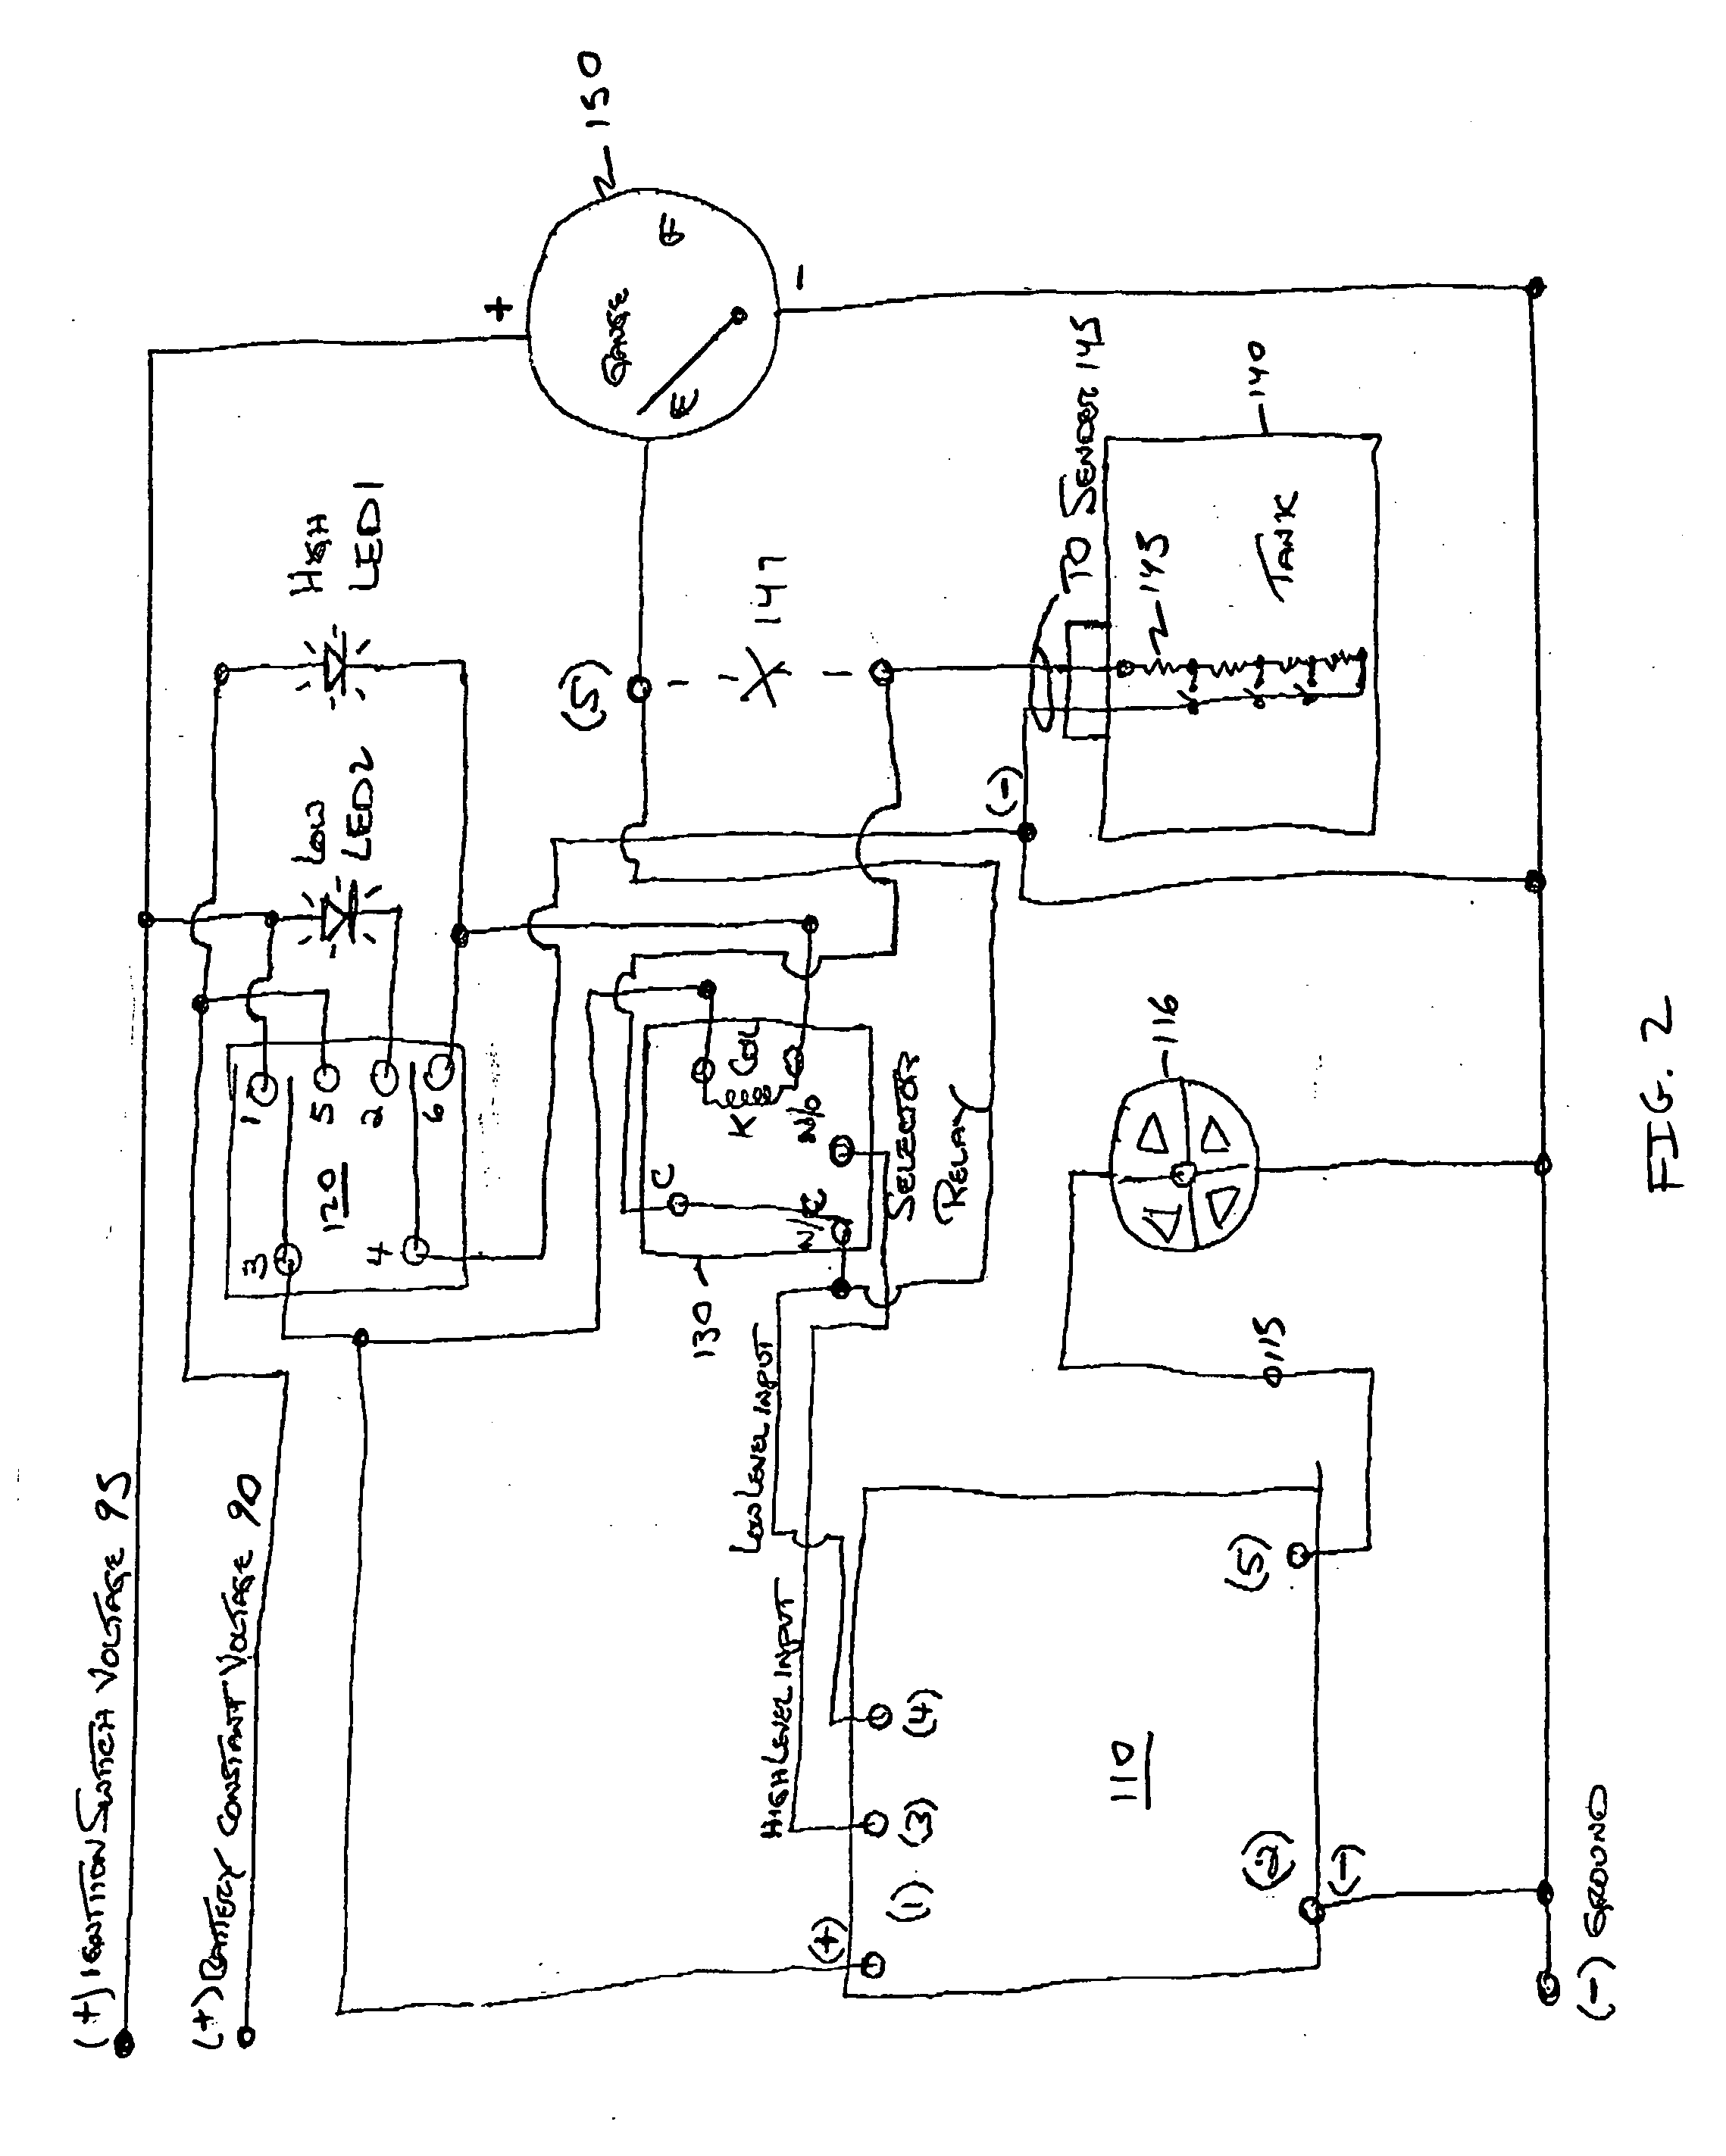 Kib Monitor Panel Wiring Diagram